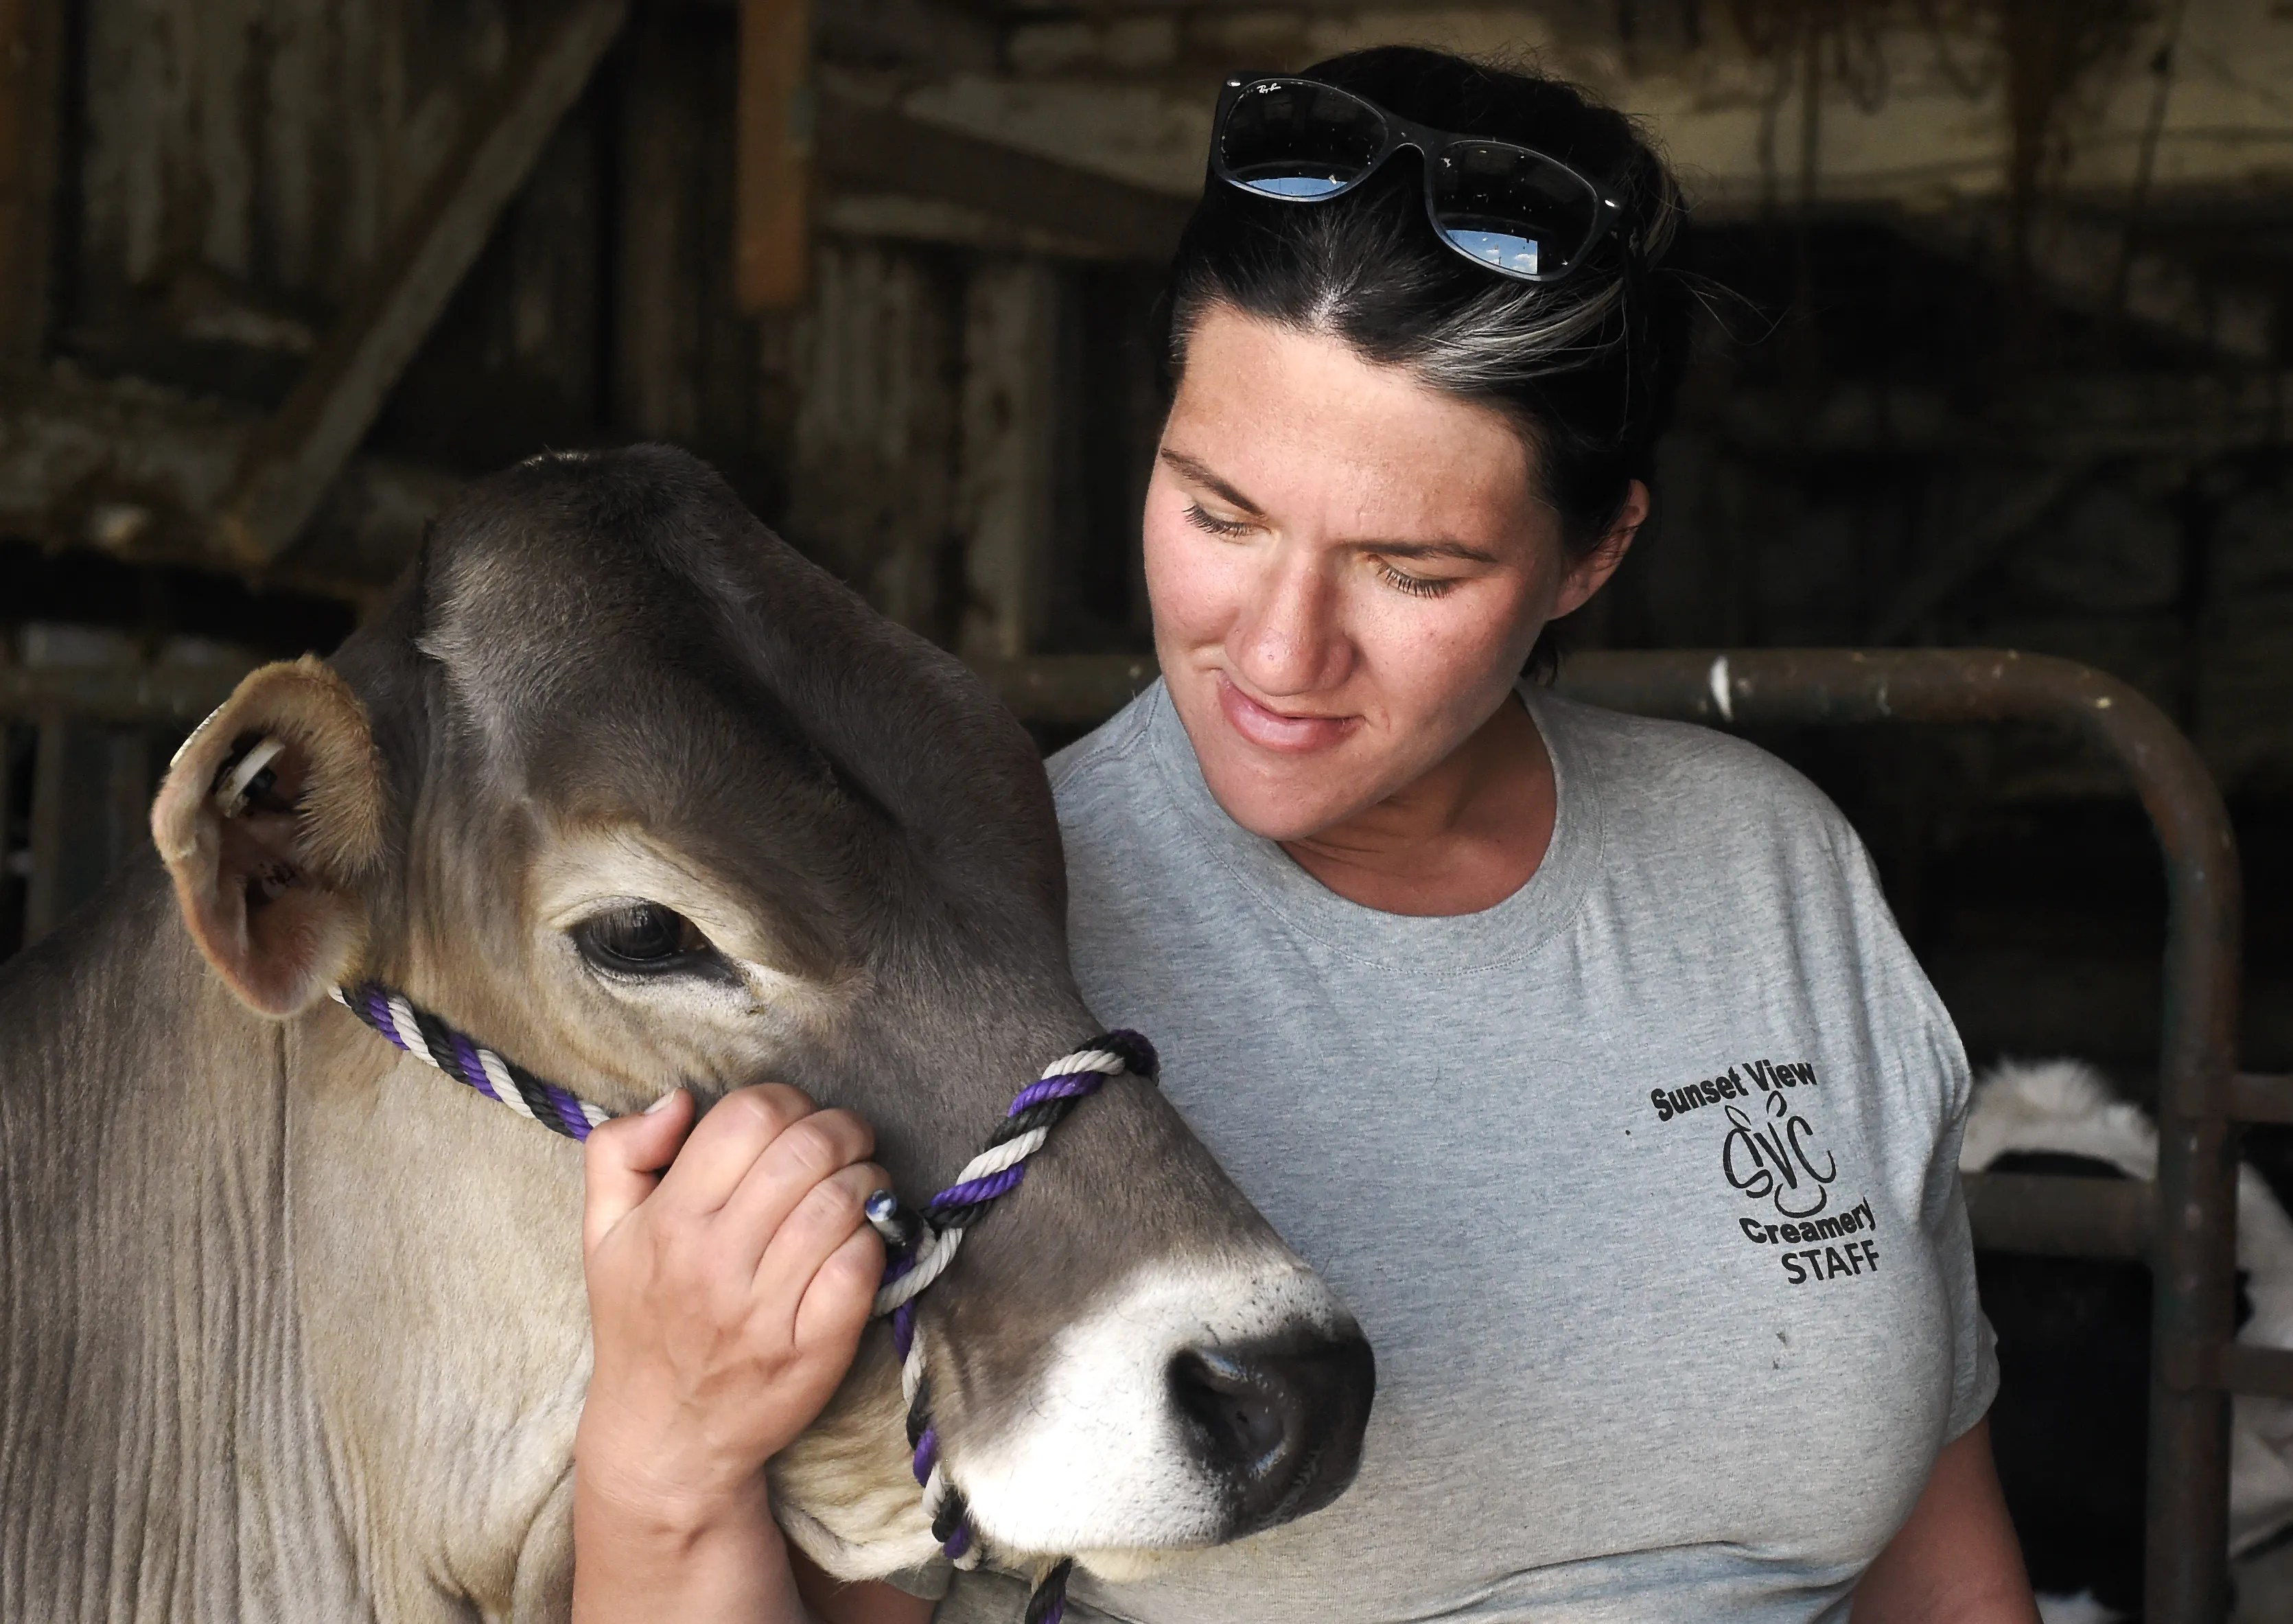 """Jess Hoffman of Sunset View Creamery with one of her Brown Swiss cows. For $15 per half hour, visitors to the Schuyler County farm can now experience """"cow cuddling.""""  May 20, 2021."""